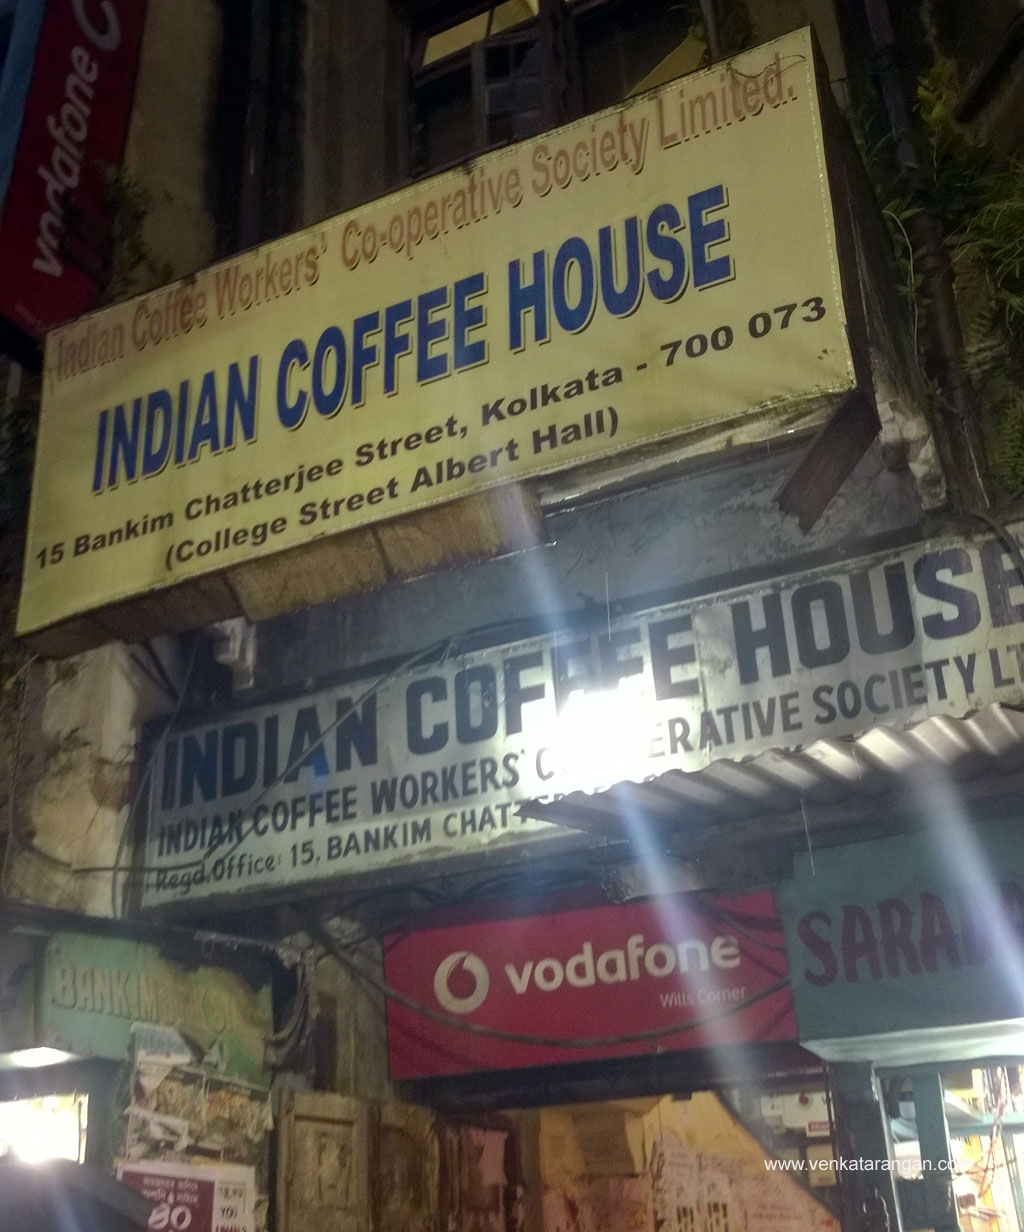 Entrance of Indian Coffee House